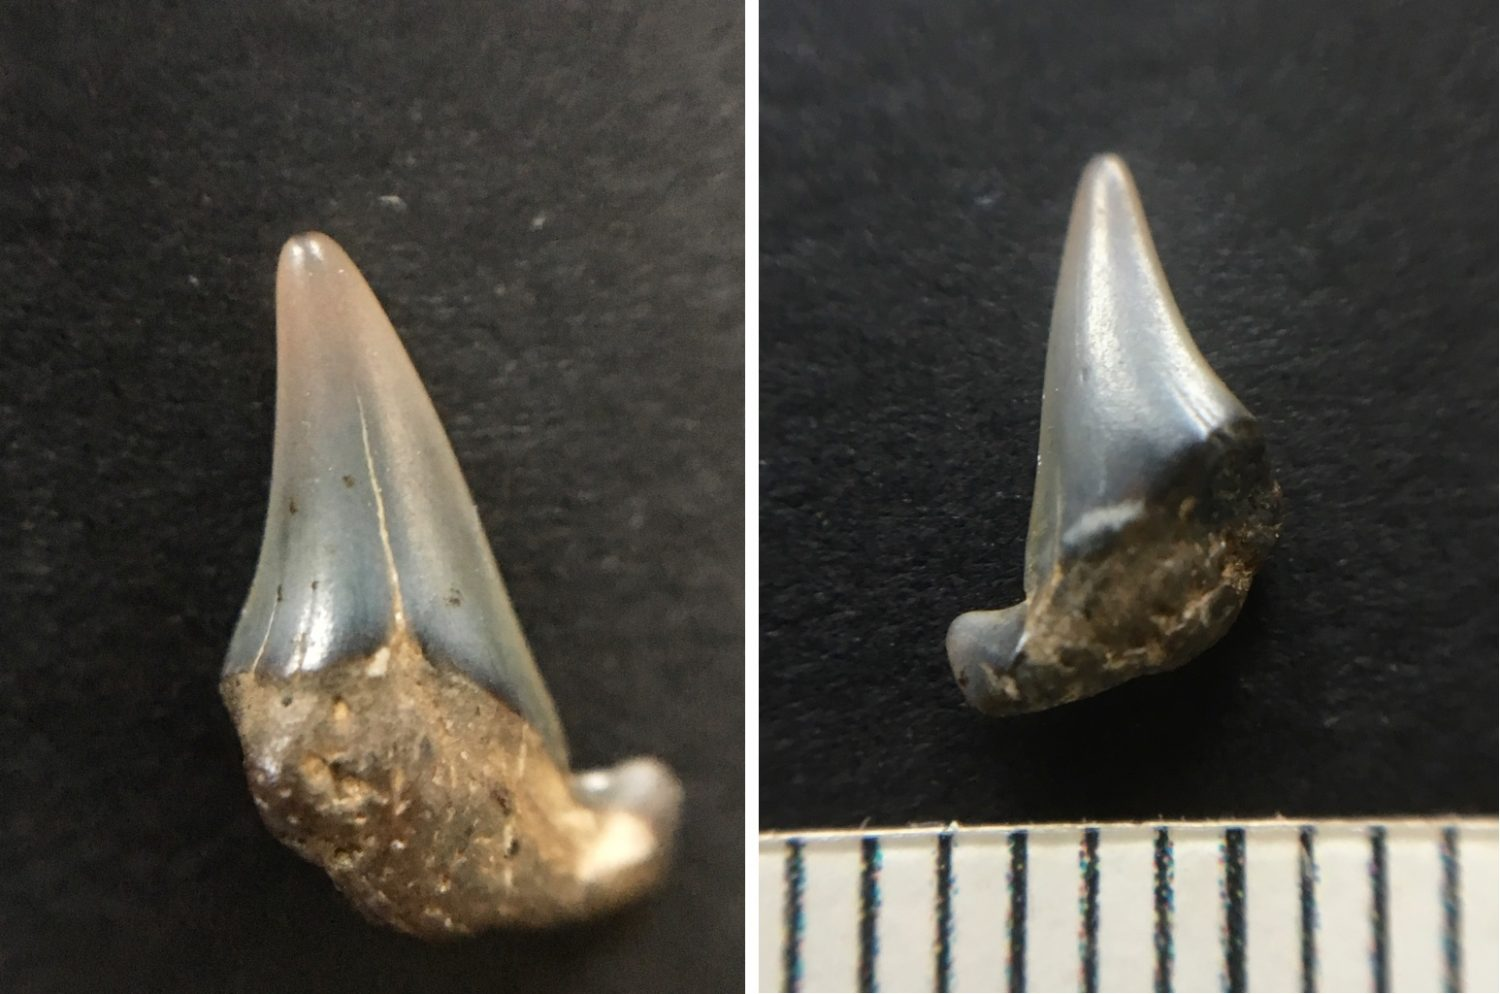 Fossilised shark tooth with and without scale